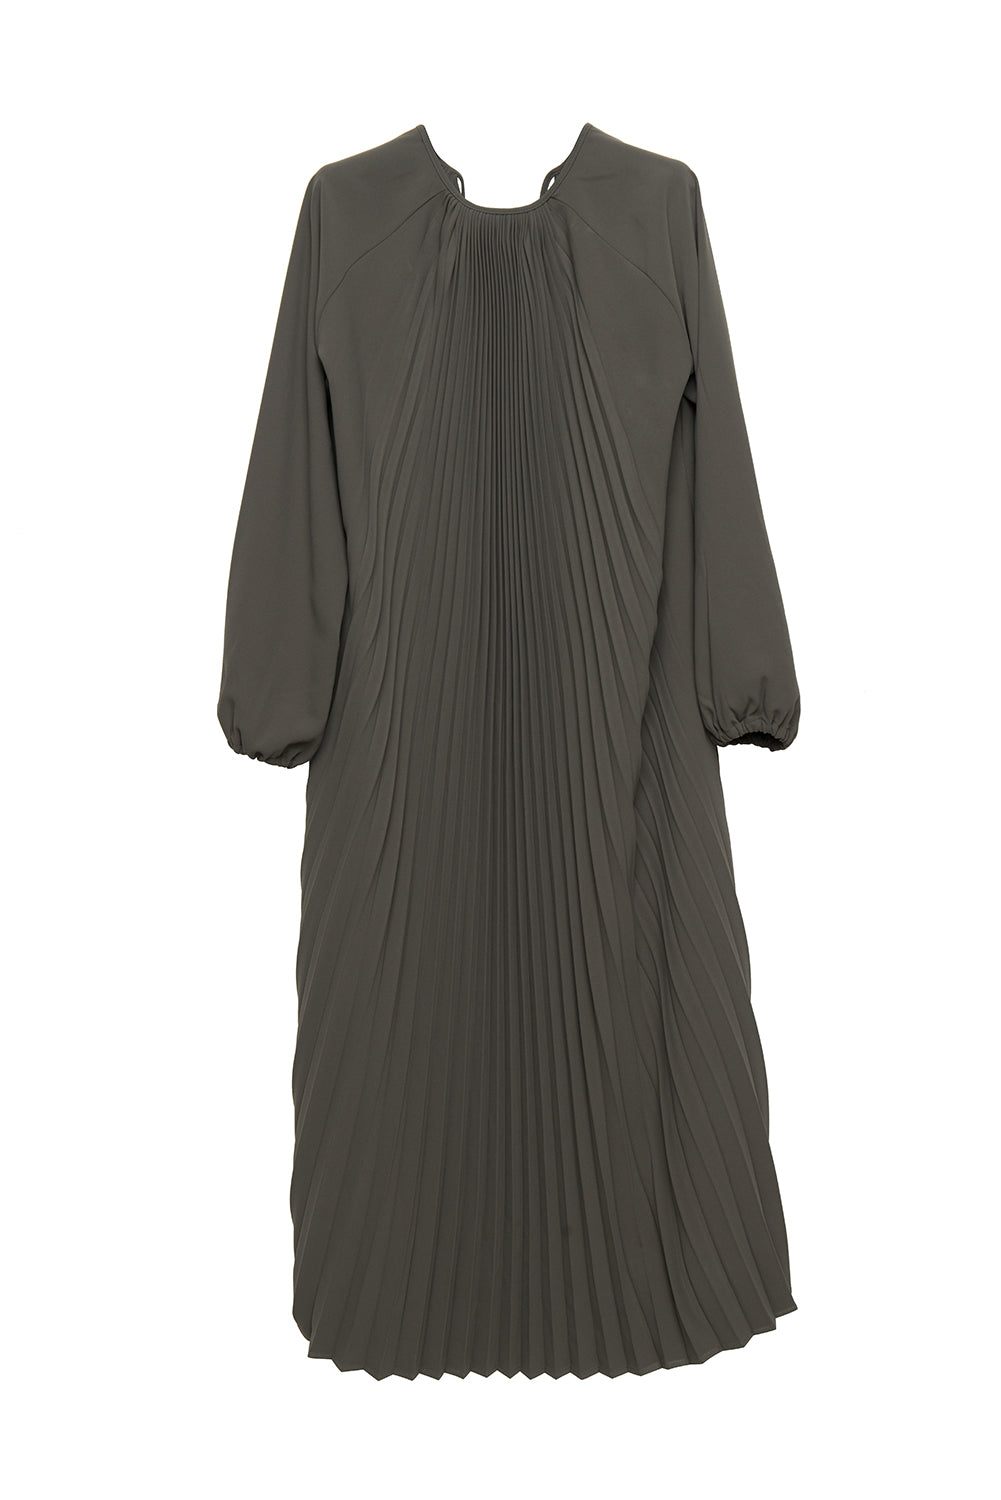 Fan-shaped Pleated Dress - front row shop